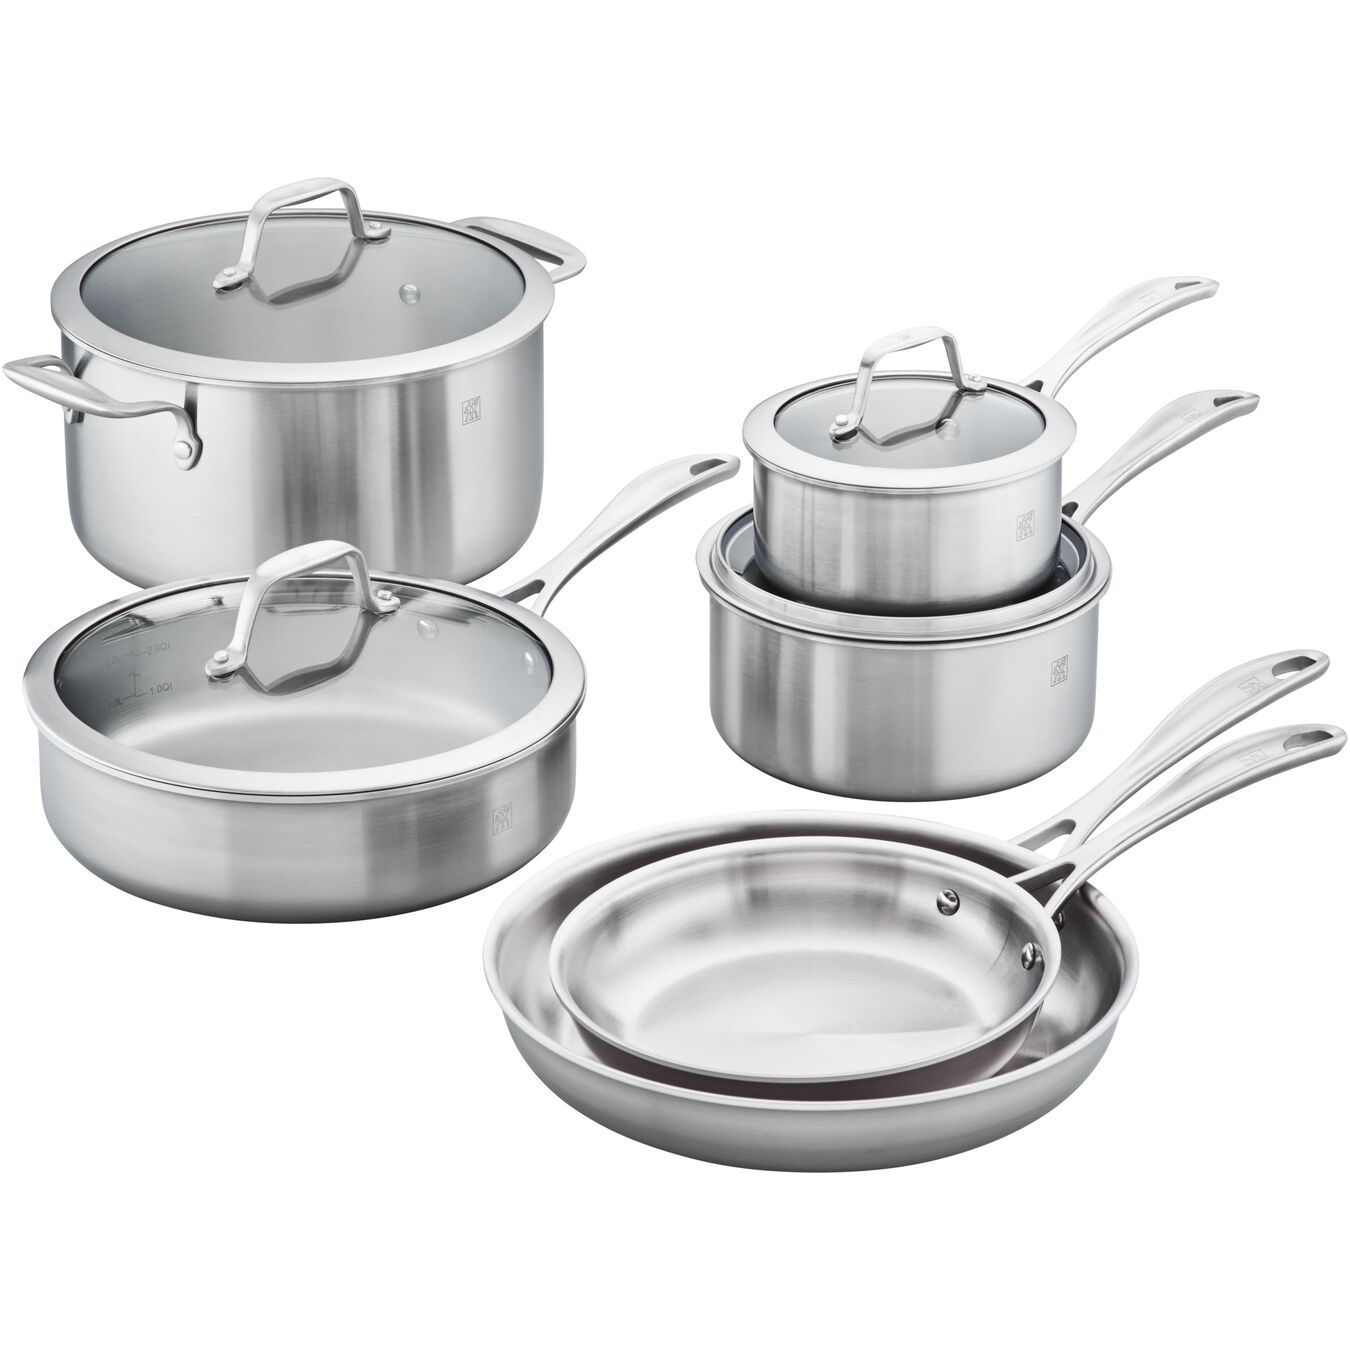 3-ply 10-pc Stainless Steel Cookware Set,,large 1